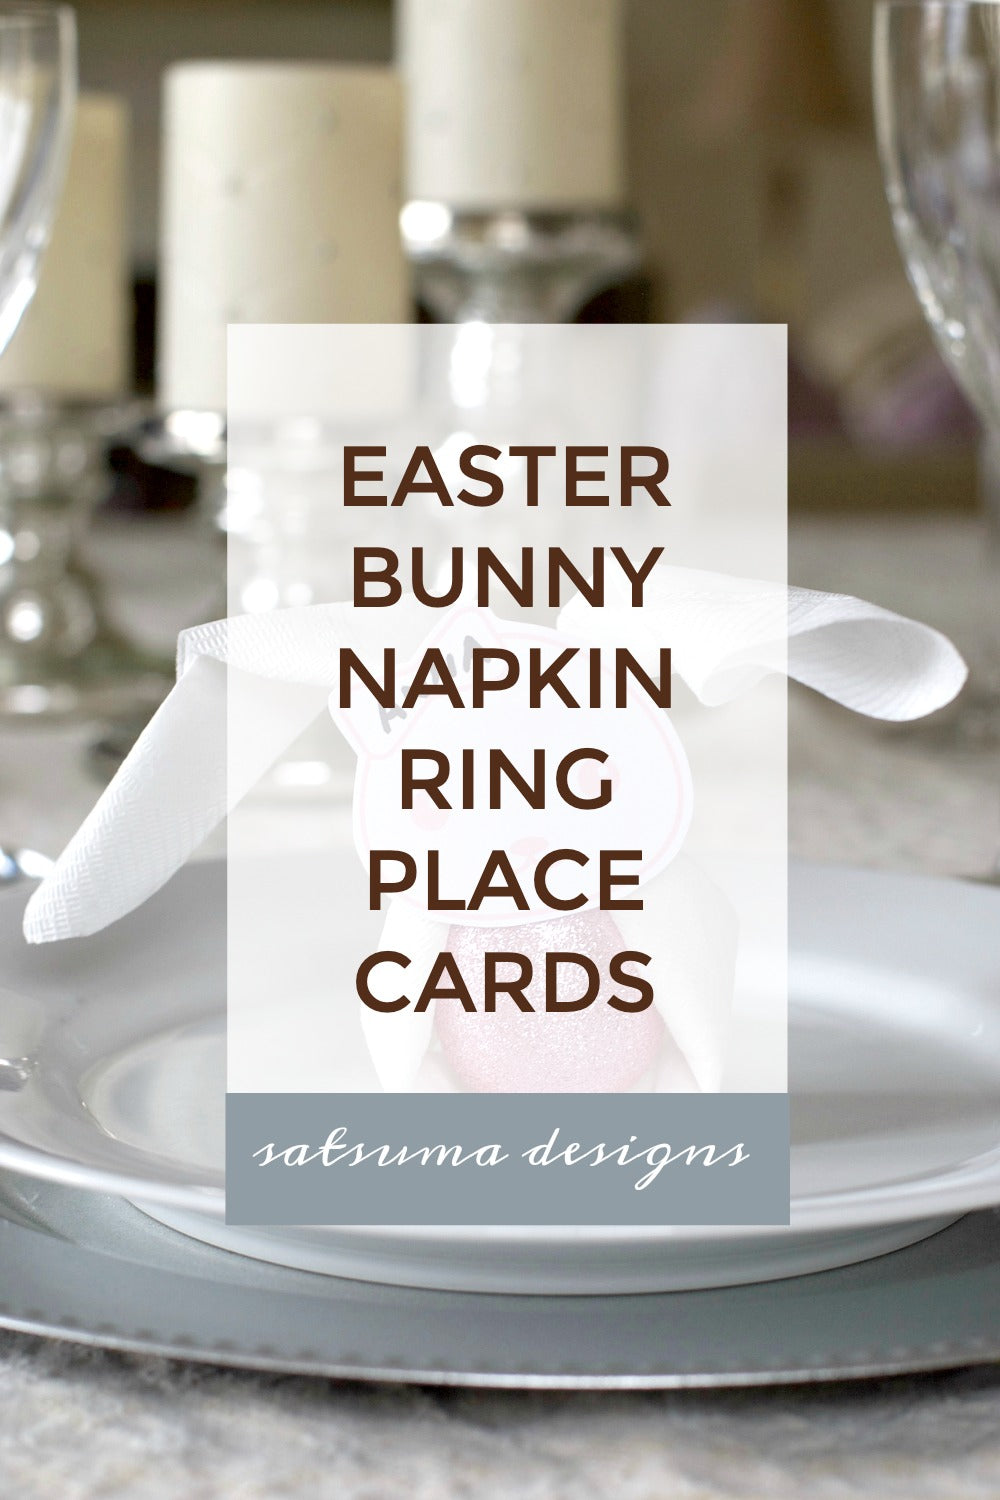 Easy DIY Kids Table Easter Bunny Napkin Ring Place Cards